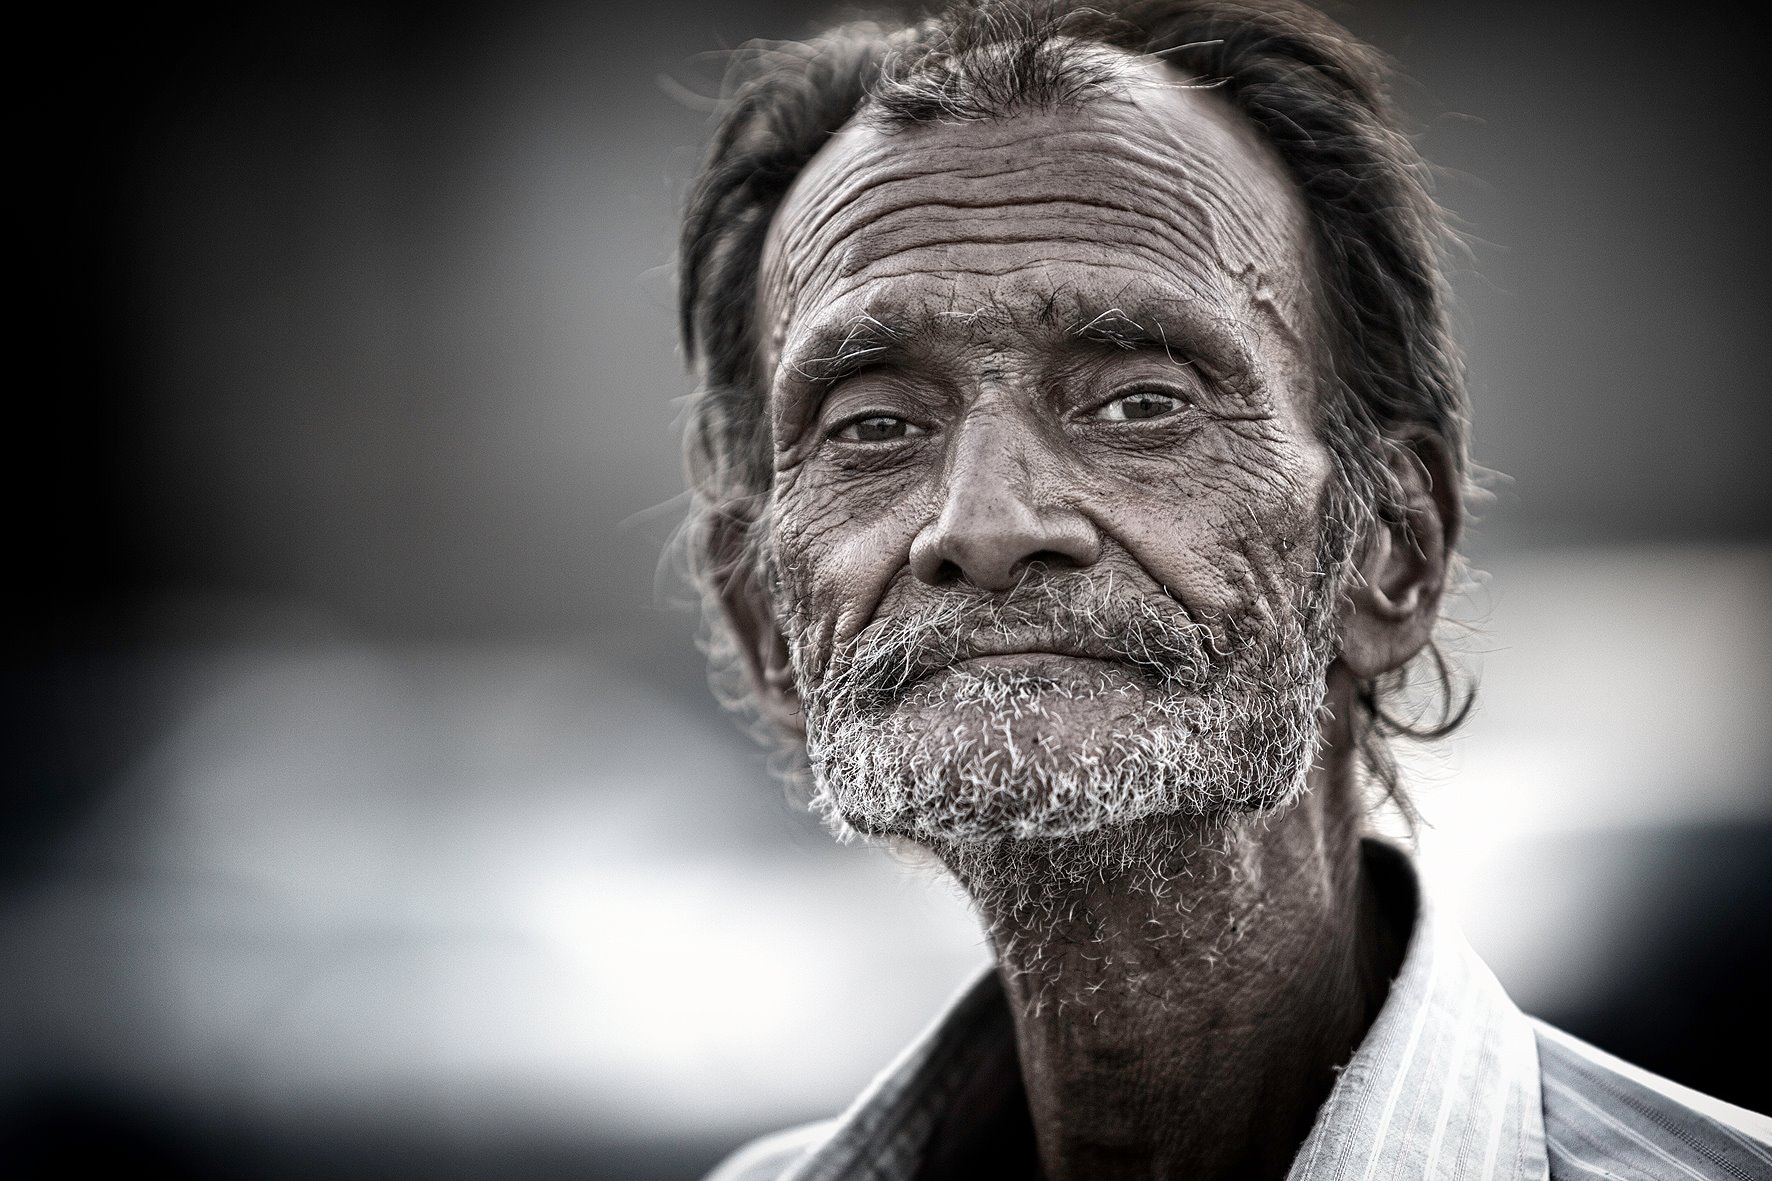 Photograph Face on the Street by Khalid Aziz on 500px